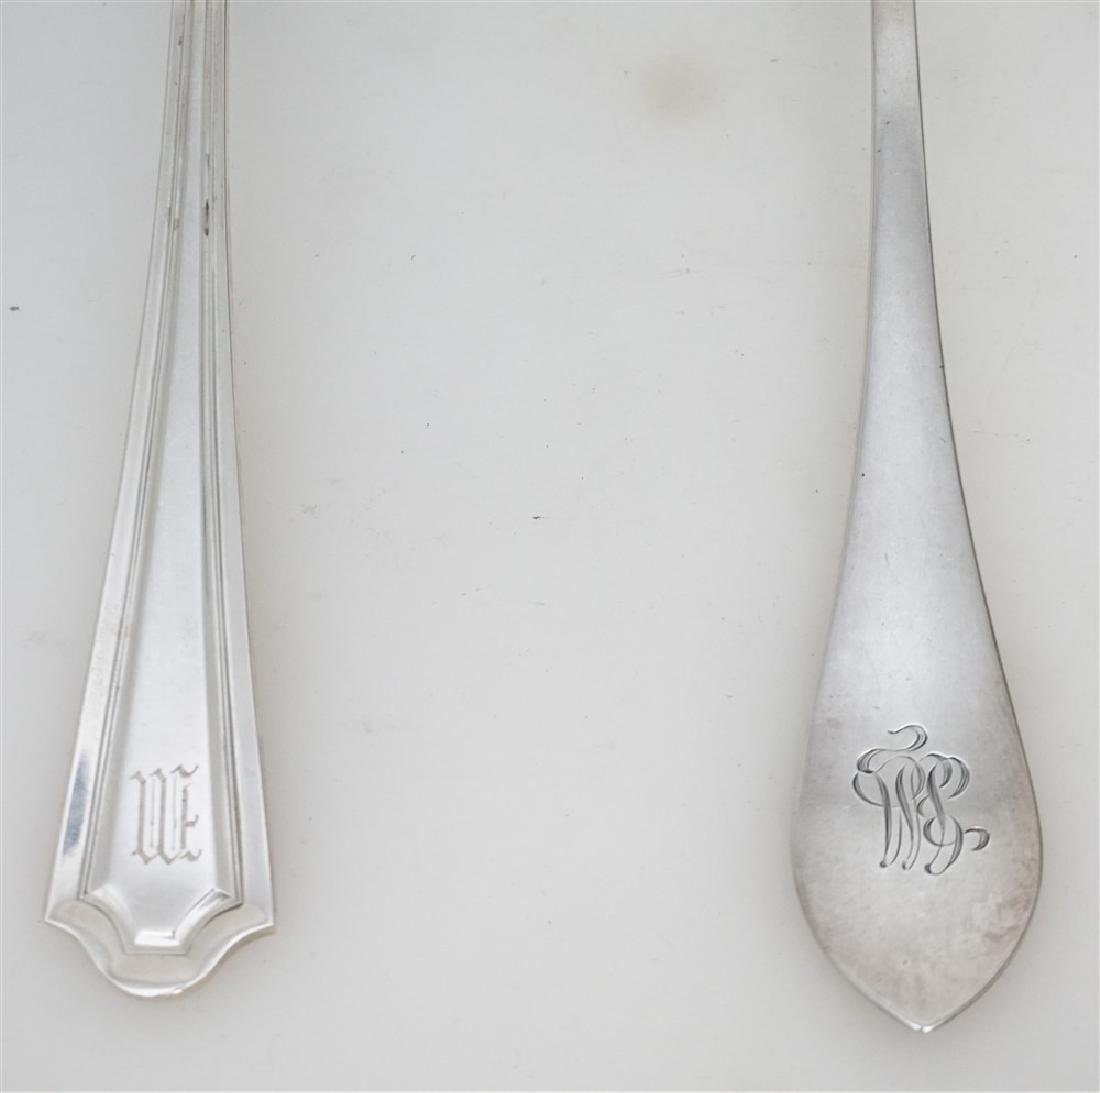 2 STERLING CASSEROLE SERVING SPOONS - 2